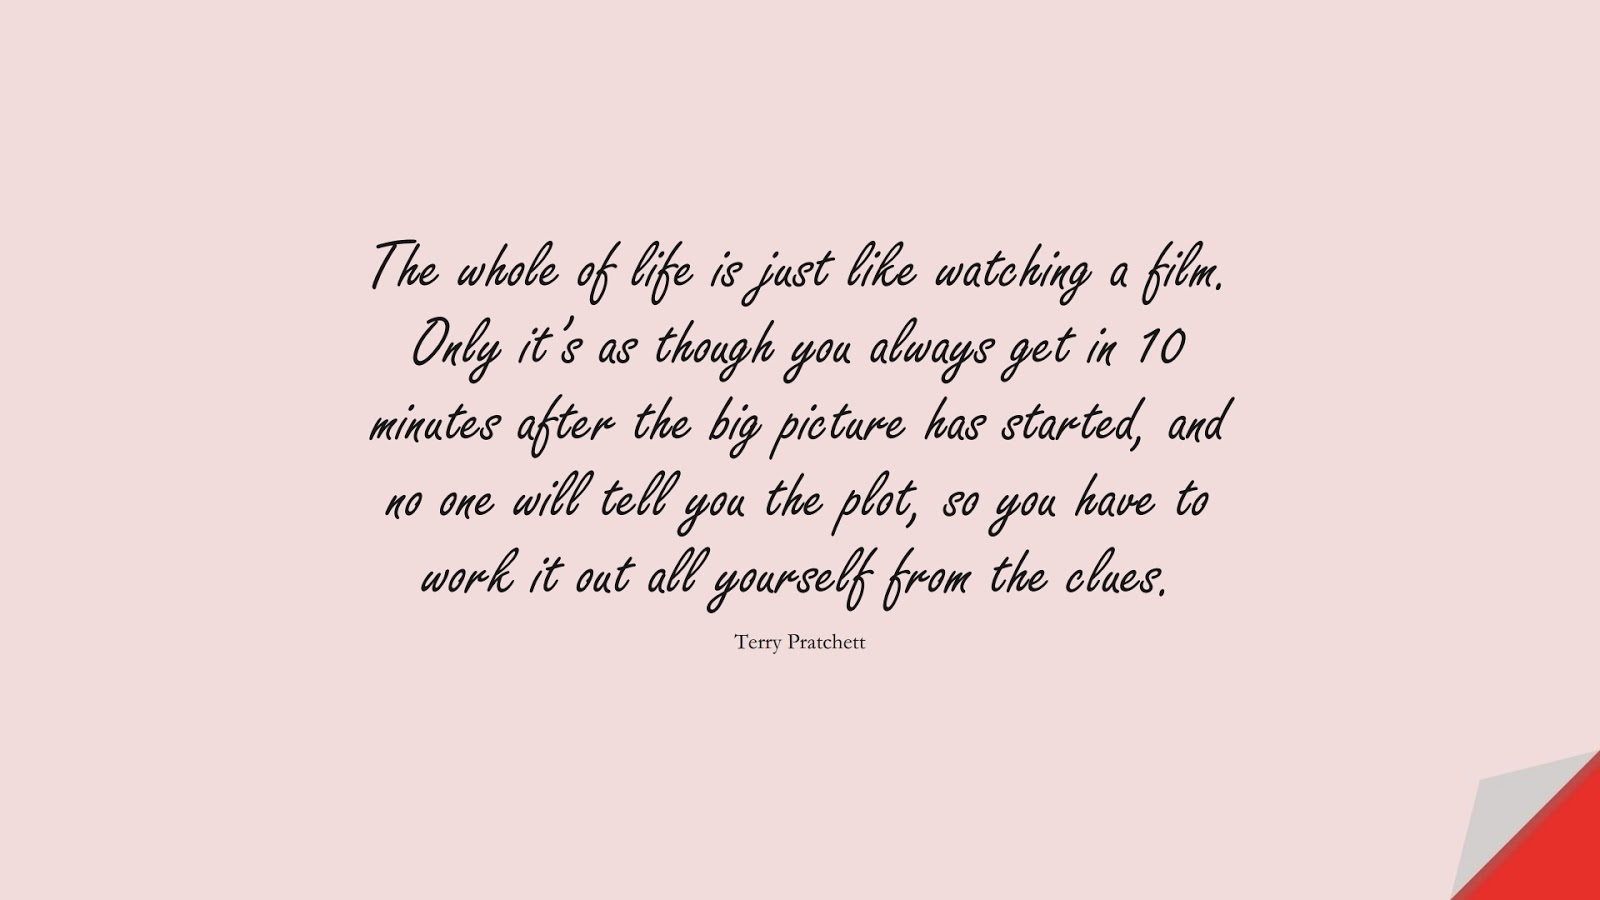 The whole of life is just like watching a film. Only it's as though you always get in 10 minutes after the big picture has started, and no one will tell you the plot, so you have to work it out all yourself from the clues. (Terry Pratchett);  #BestQuotes